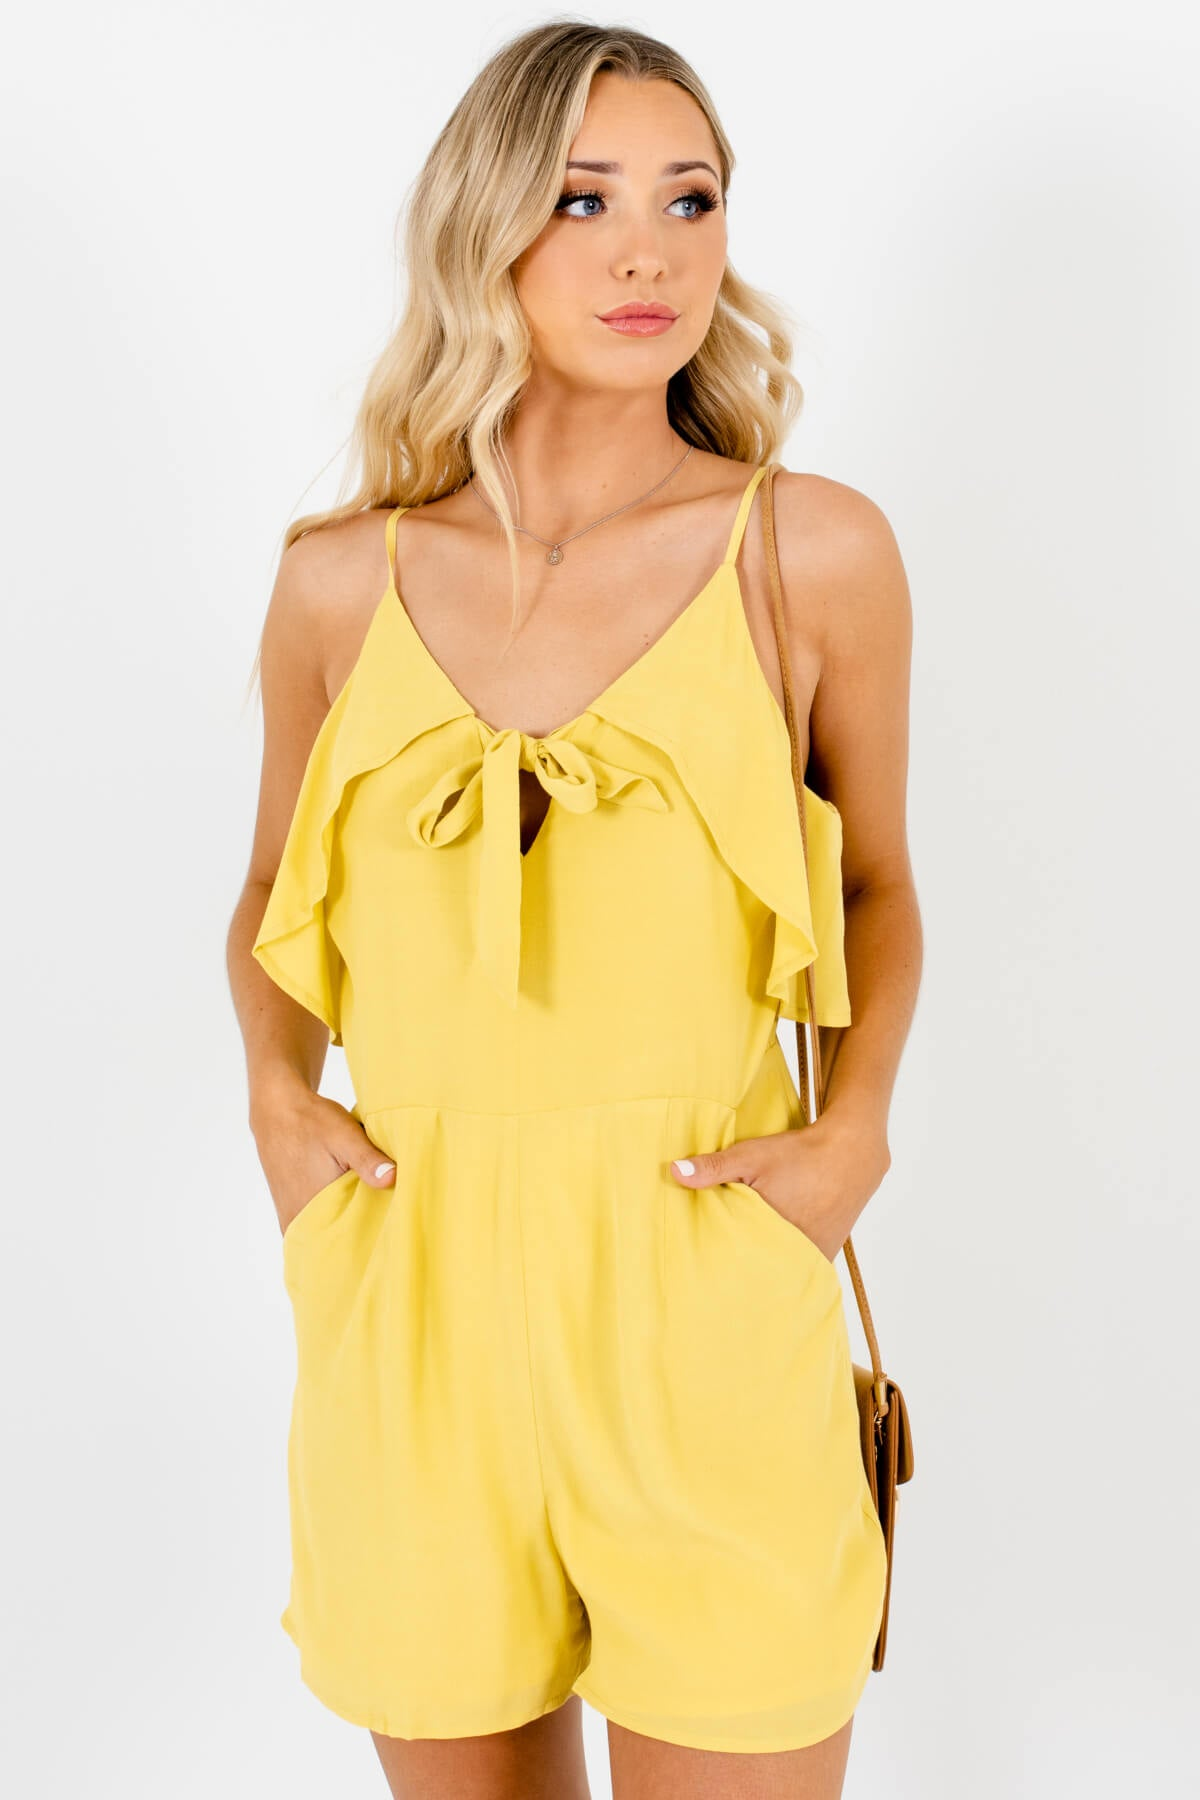 Chartreuse Yellow Green Tie-Front Ruffle Rompers with Pockets